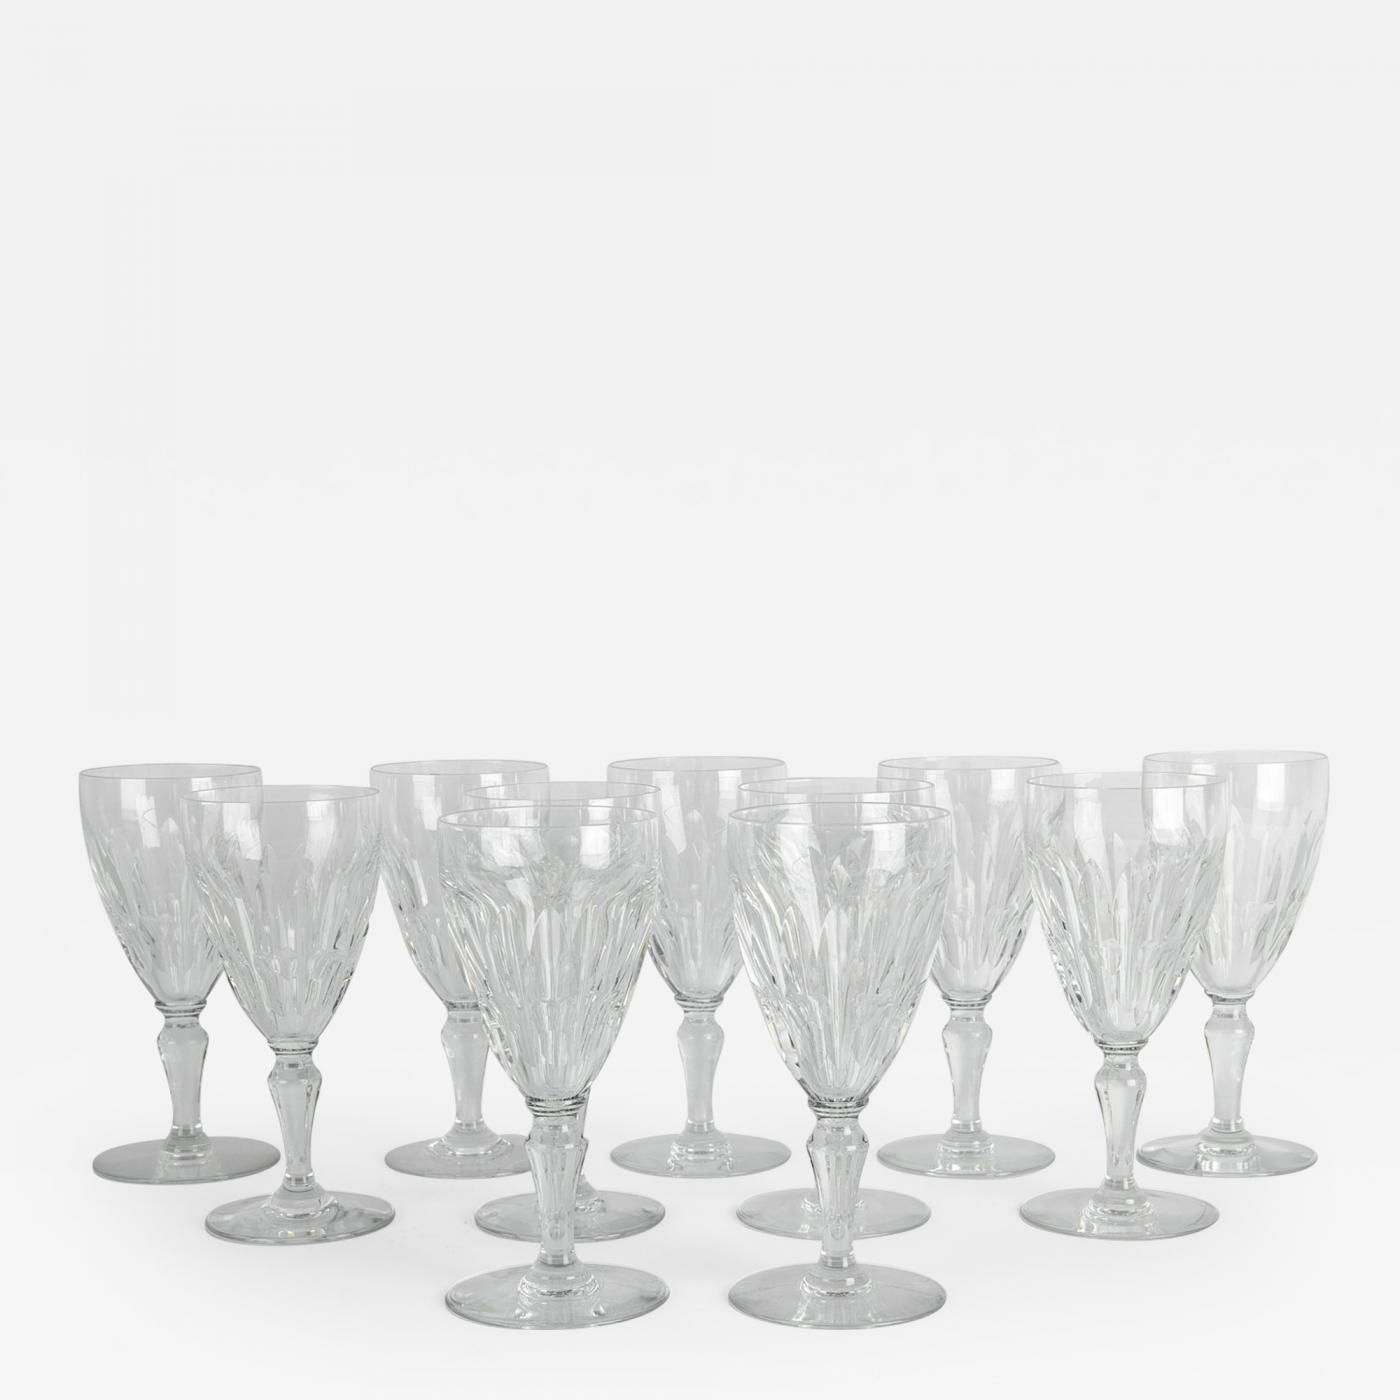 Baccarat Mid 20th Century Baccarat Crystal Glassware Set  sc 1 st  Incollect & Baccarat - Mid-20th Century Baccarat Crystal Glassware Set